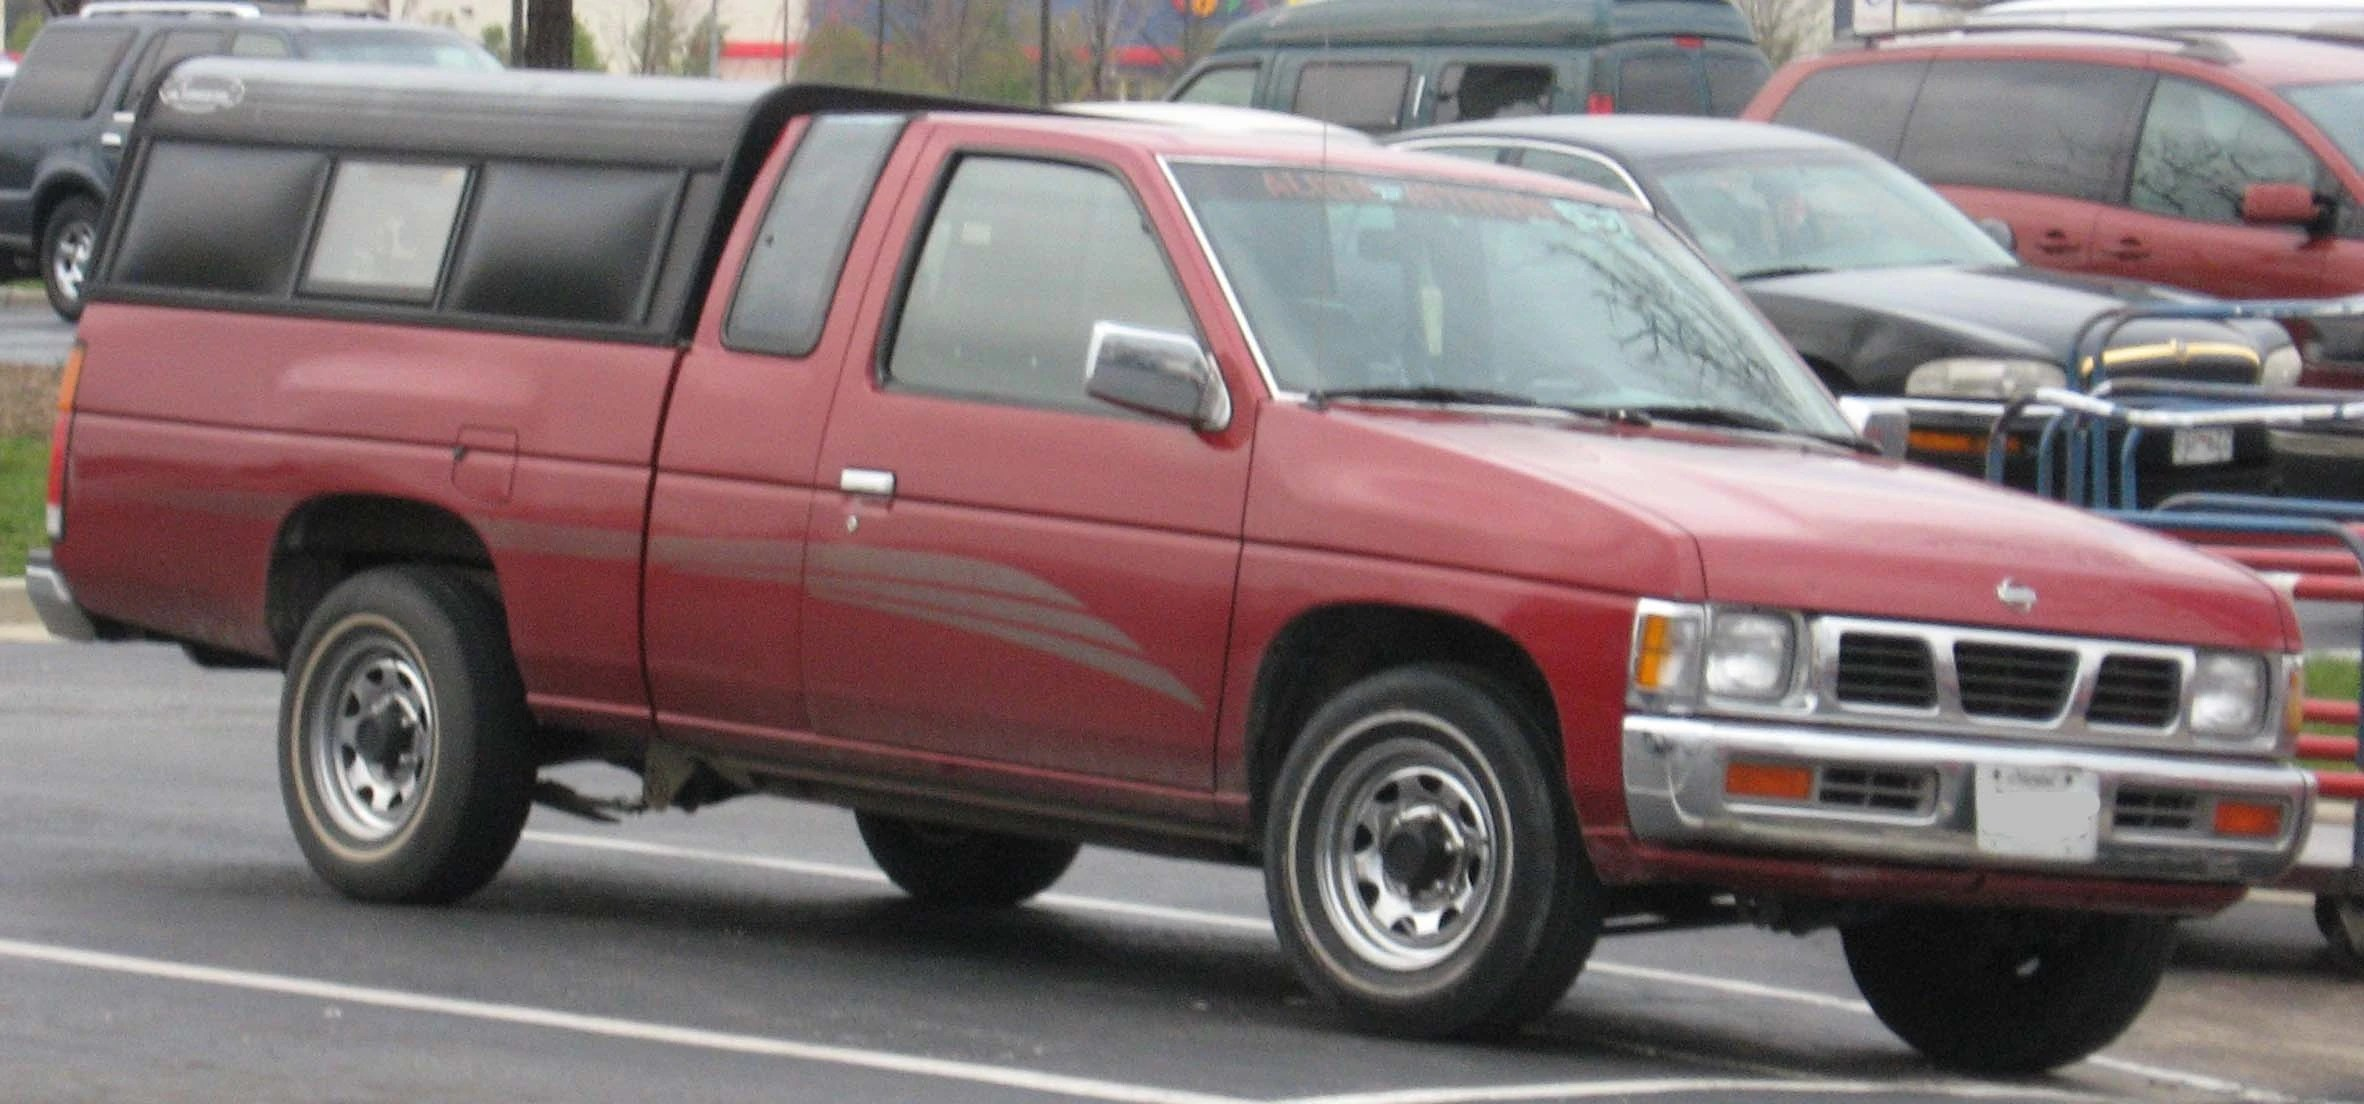 hight resolution of nissan hardbody truck with updated interior mild hood bumper and grille refresh 1993 5 1997